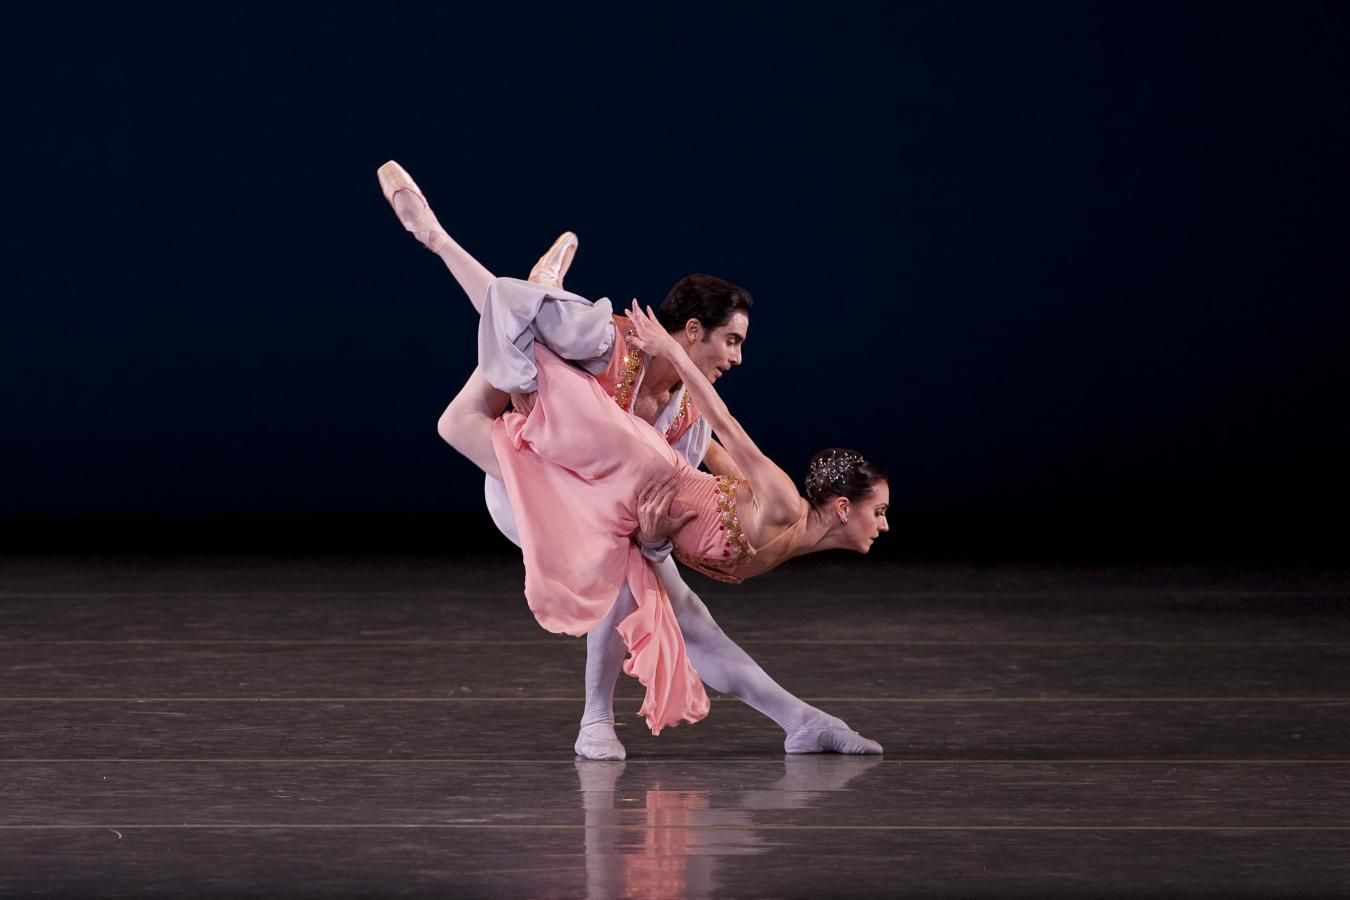 Mary Carmen Catoya and Renato Penteado in Tschaikovsky Pas de Deux. Choreography by George Balanchin